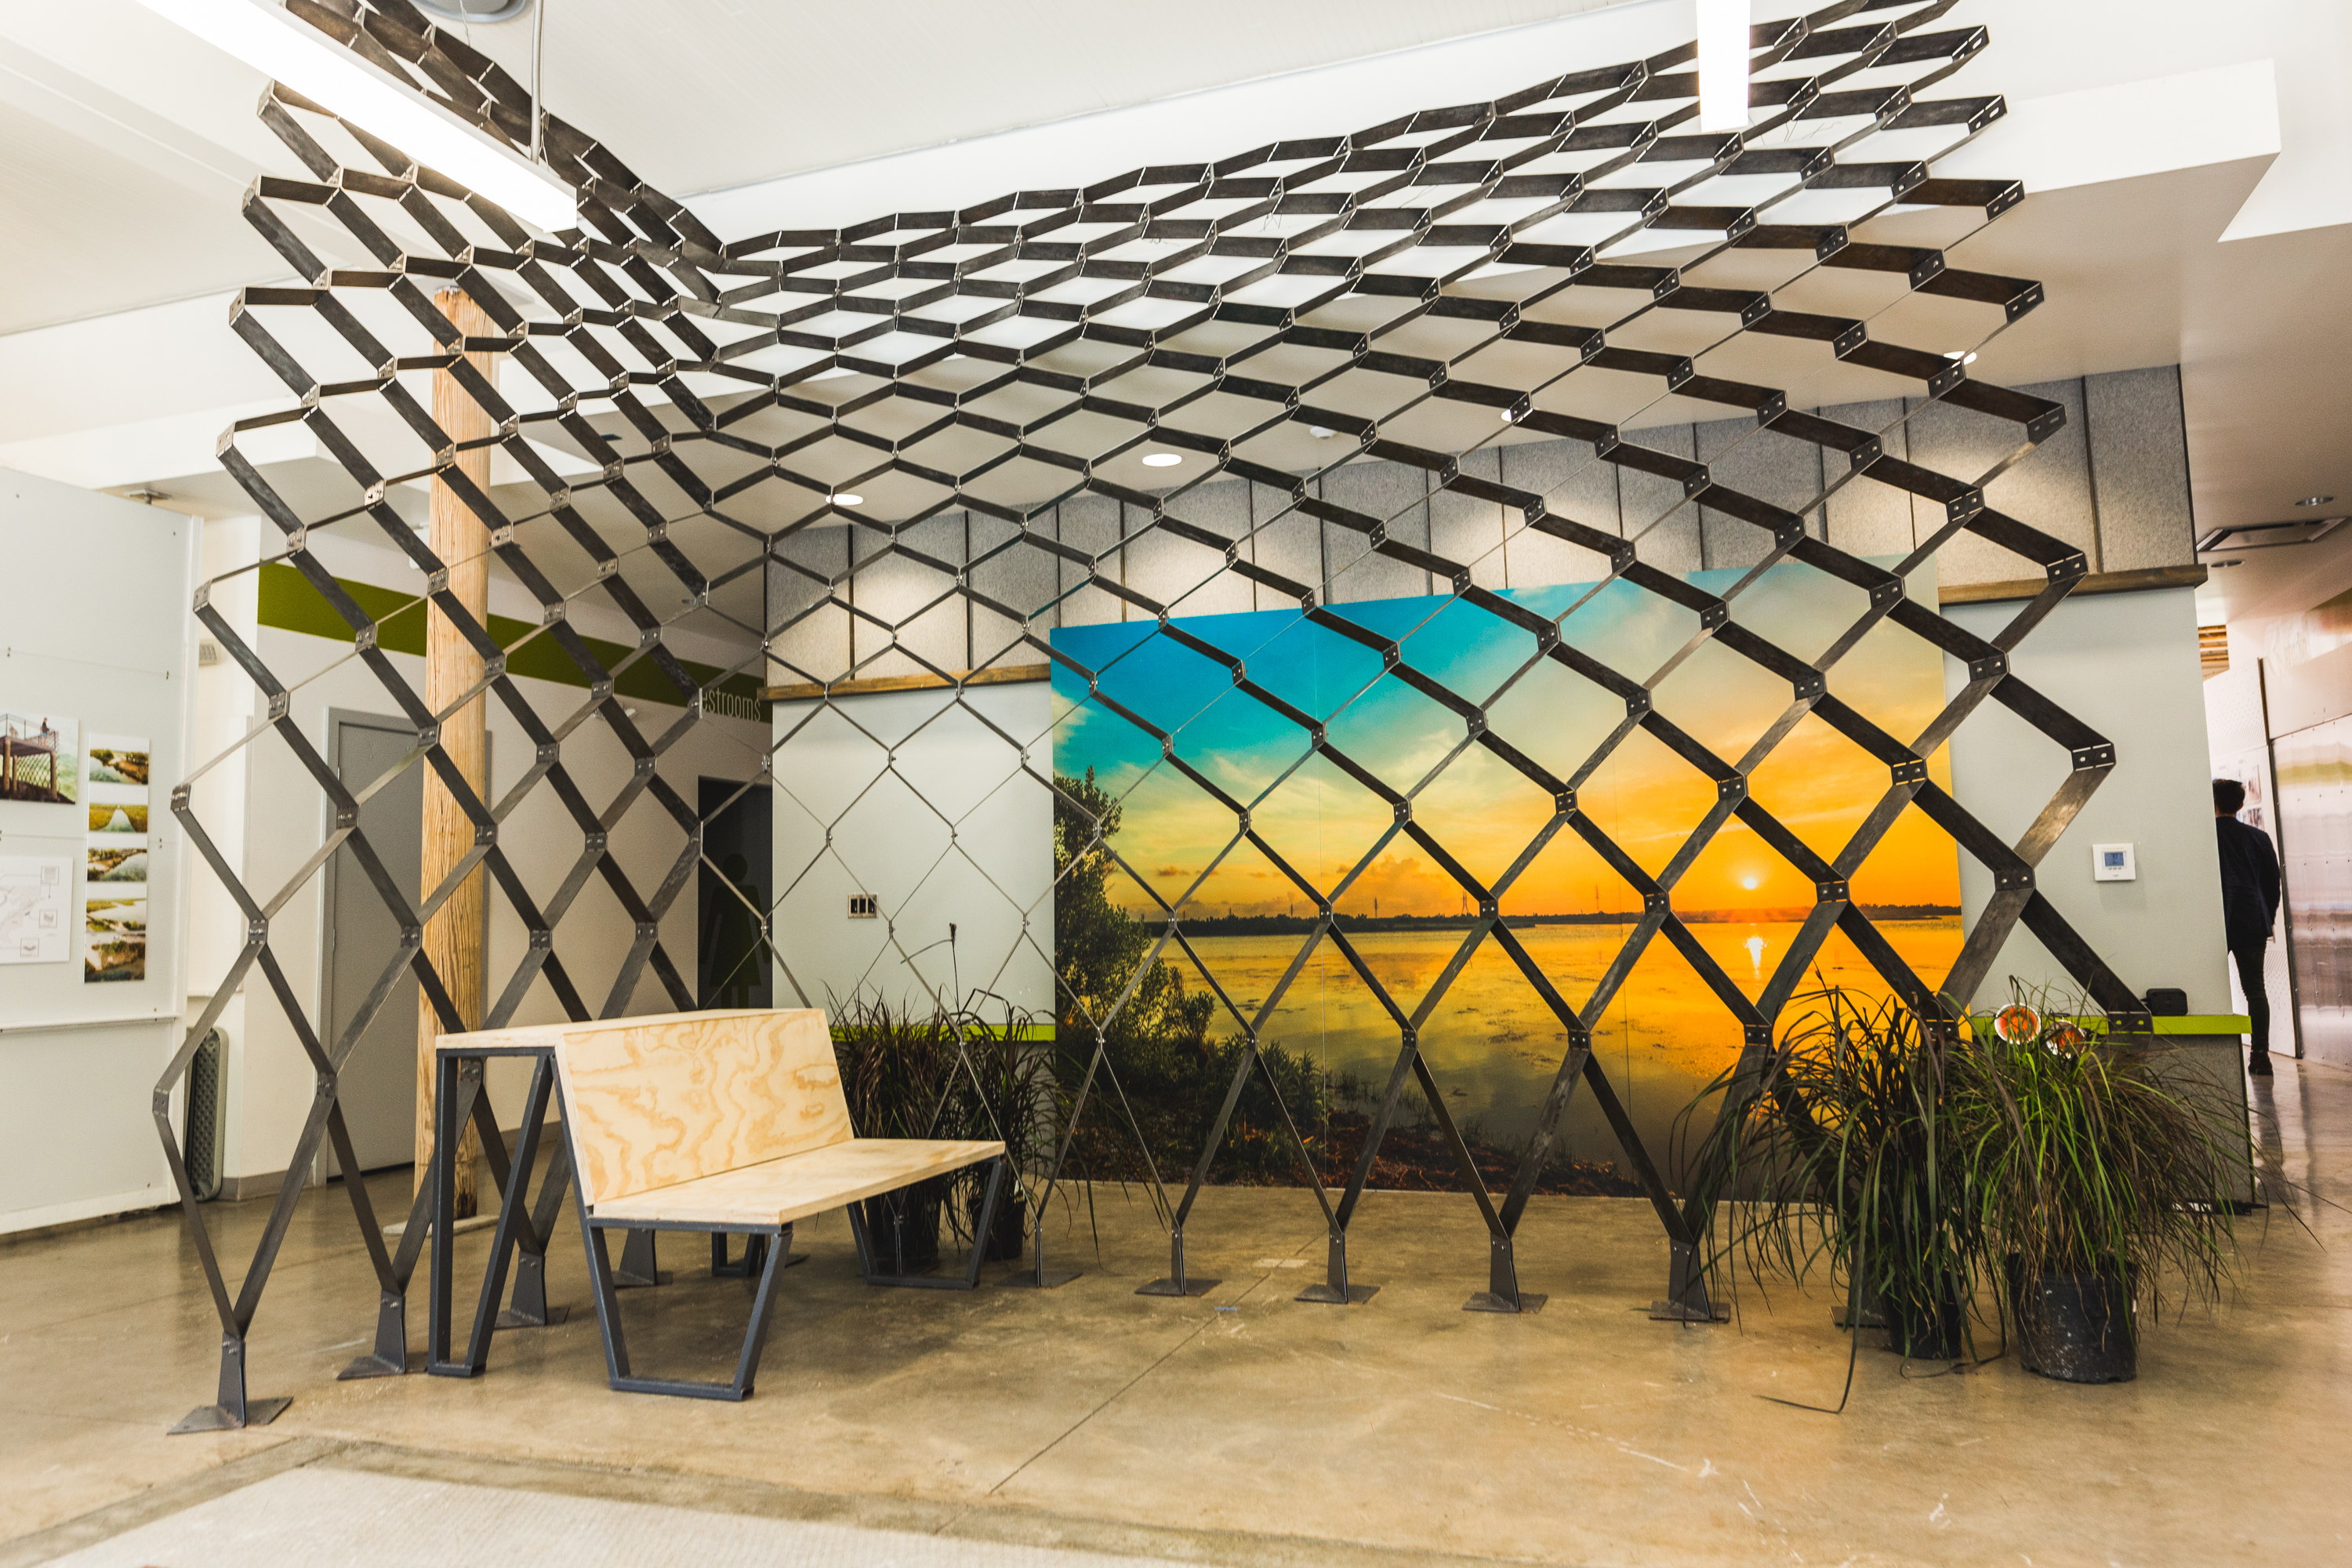 Steel screen structure with a wooden bench in front, on display inside a building with a sunset mural behind